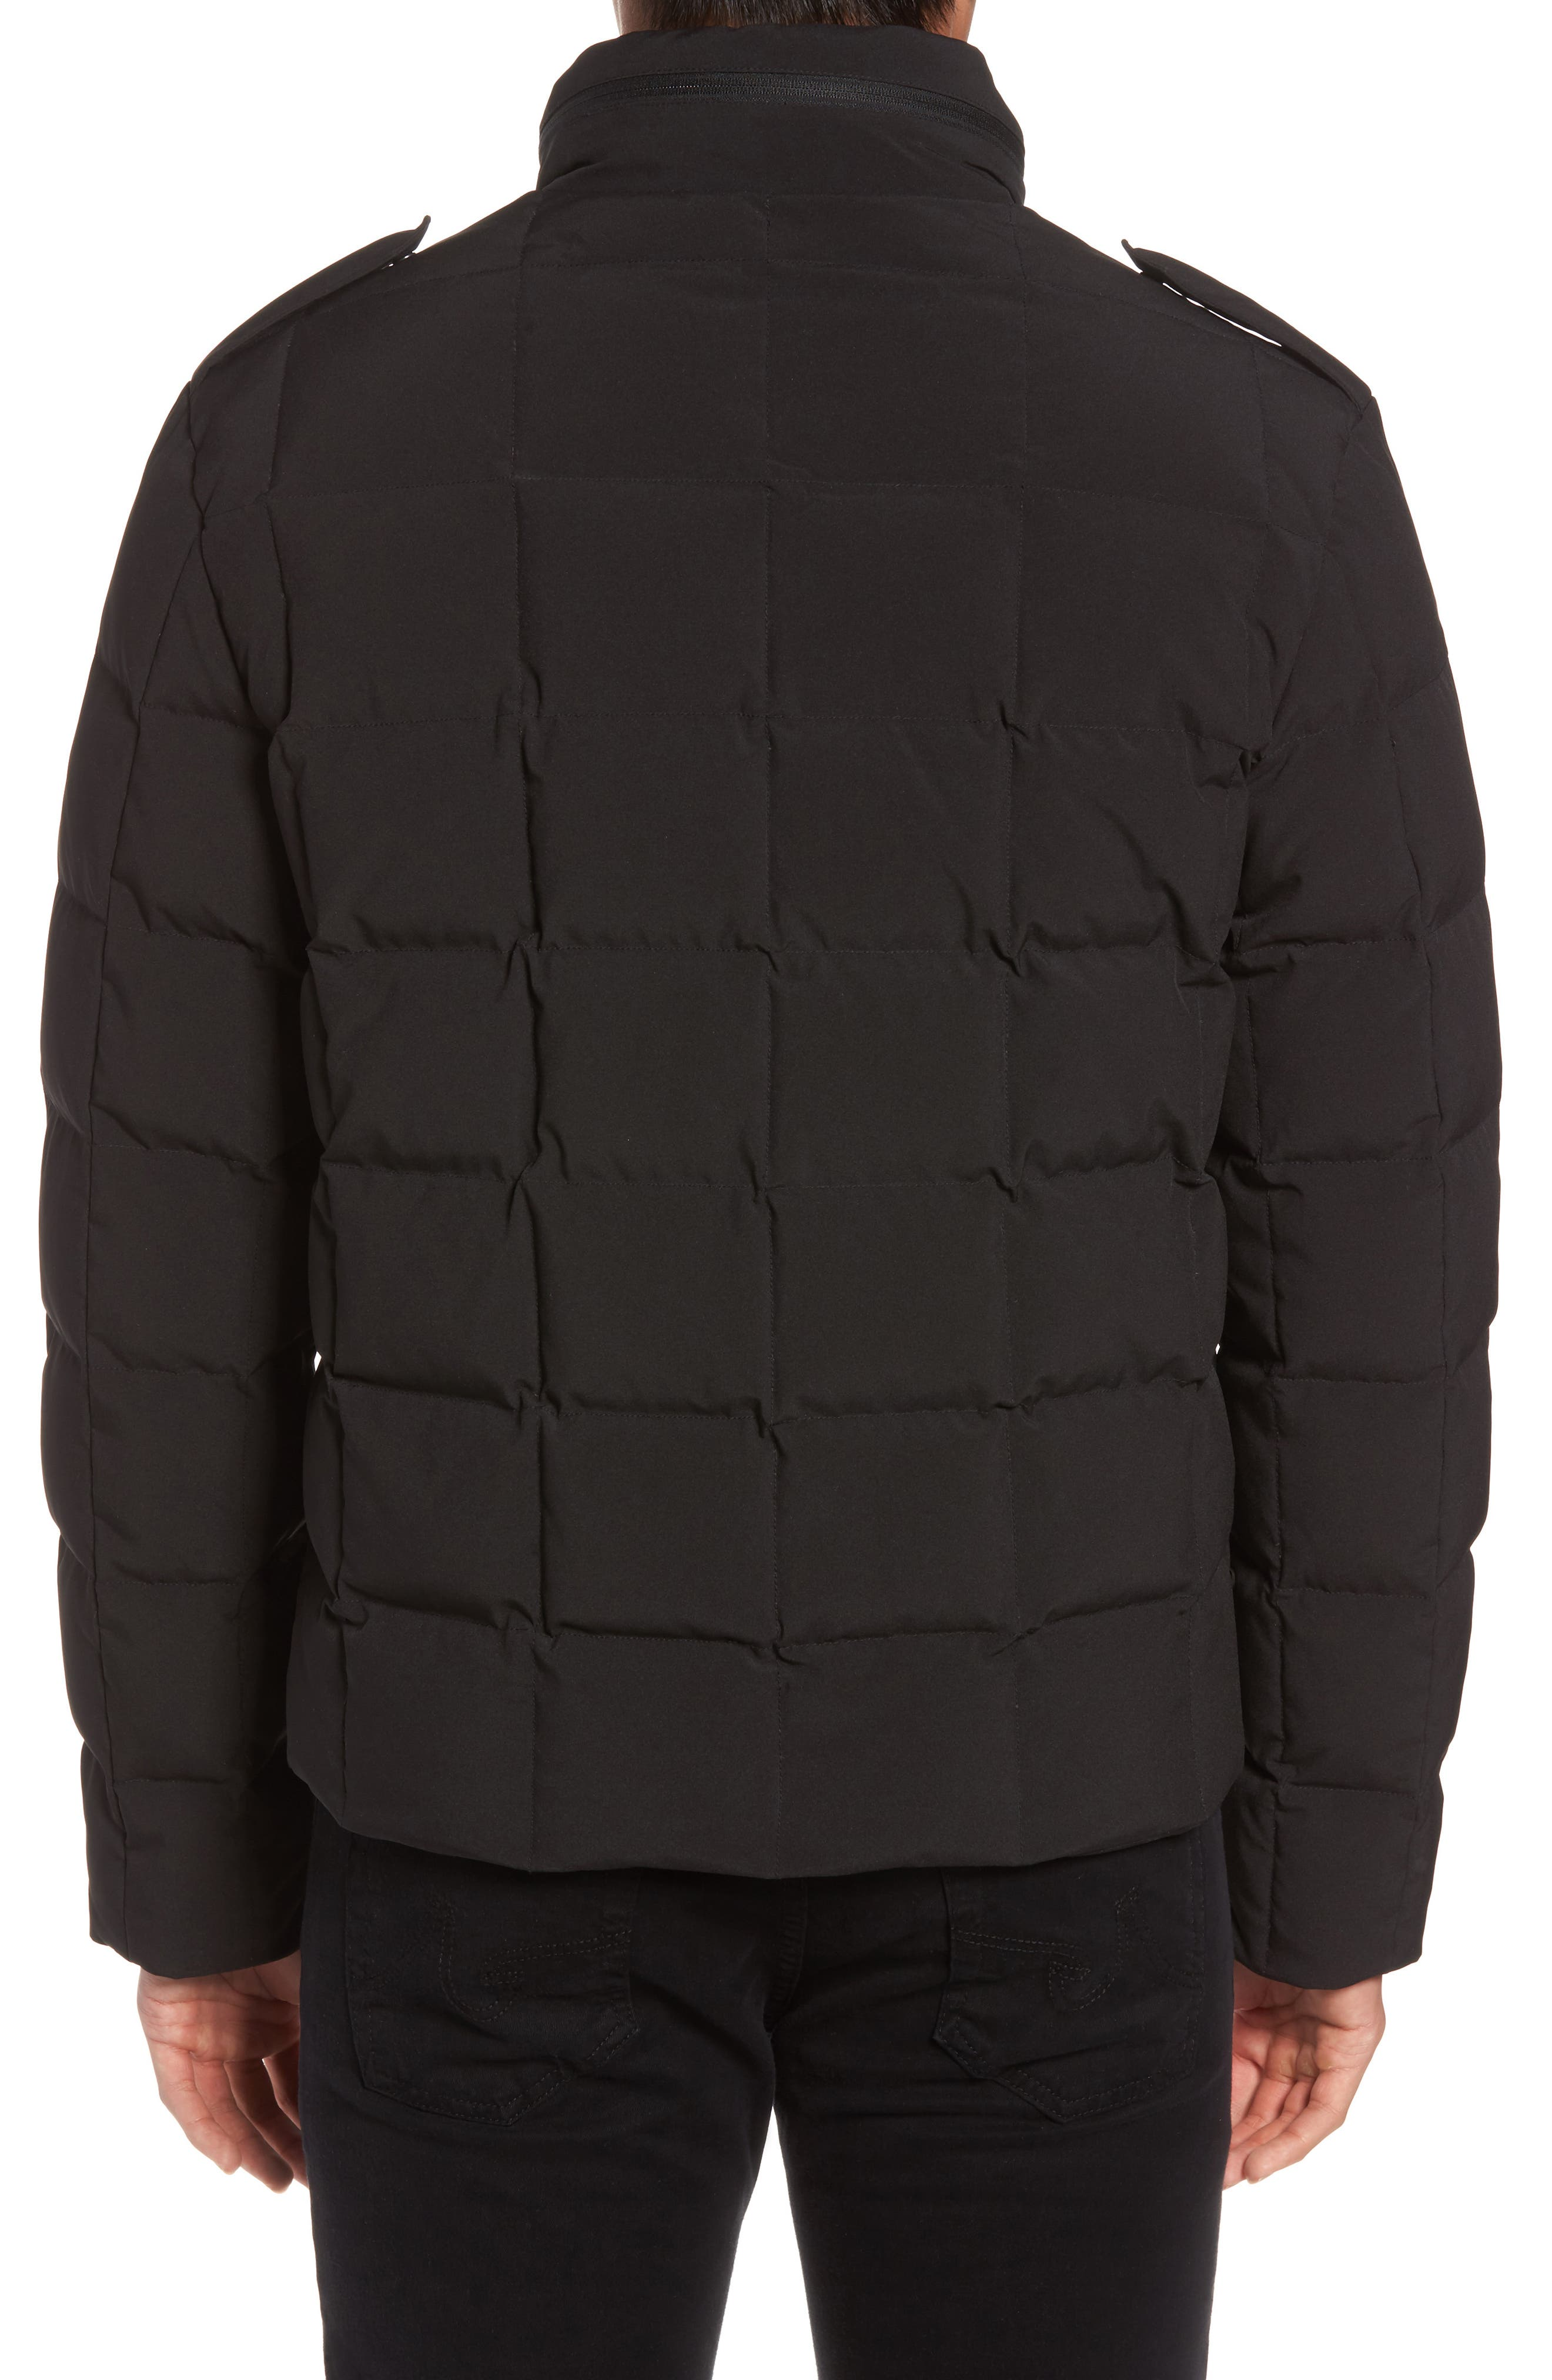 Box Quilted Jacket,                             Alternate thumbnail 2, color,                             Black